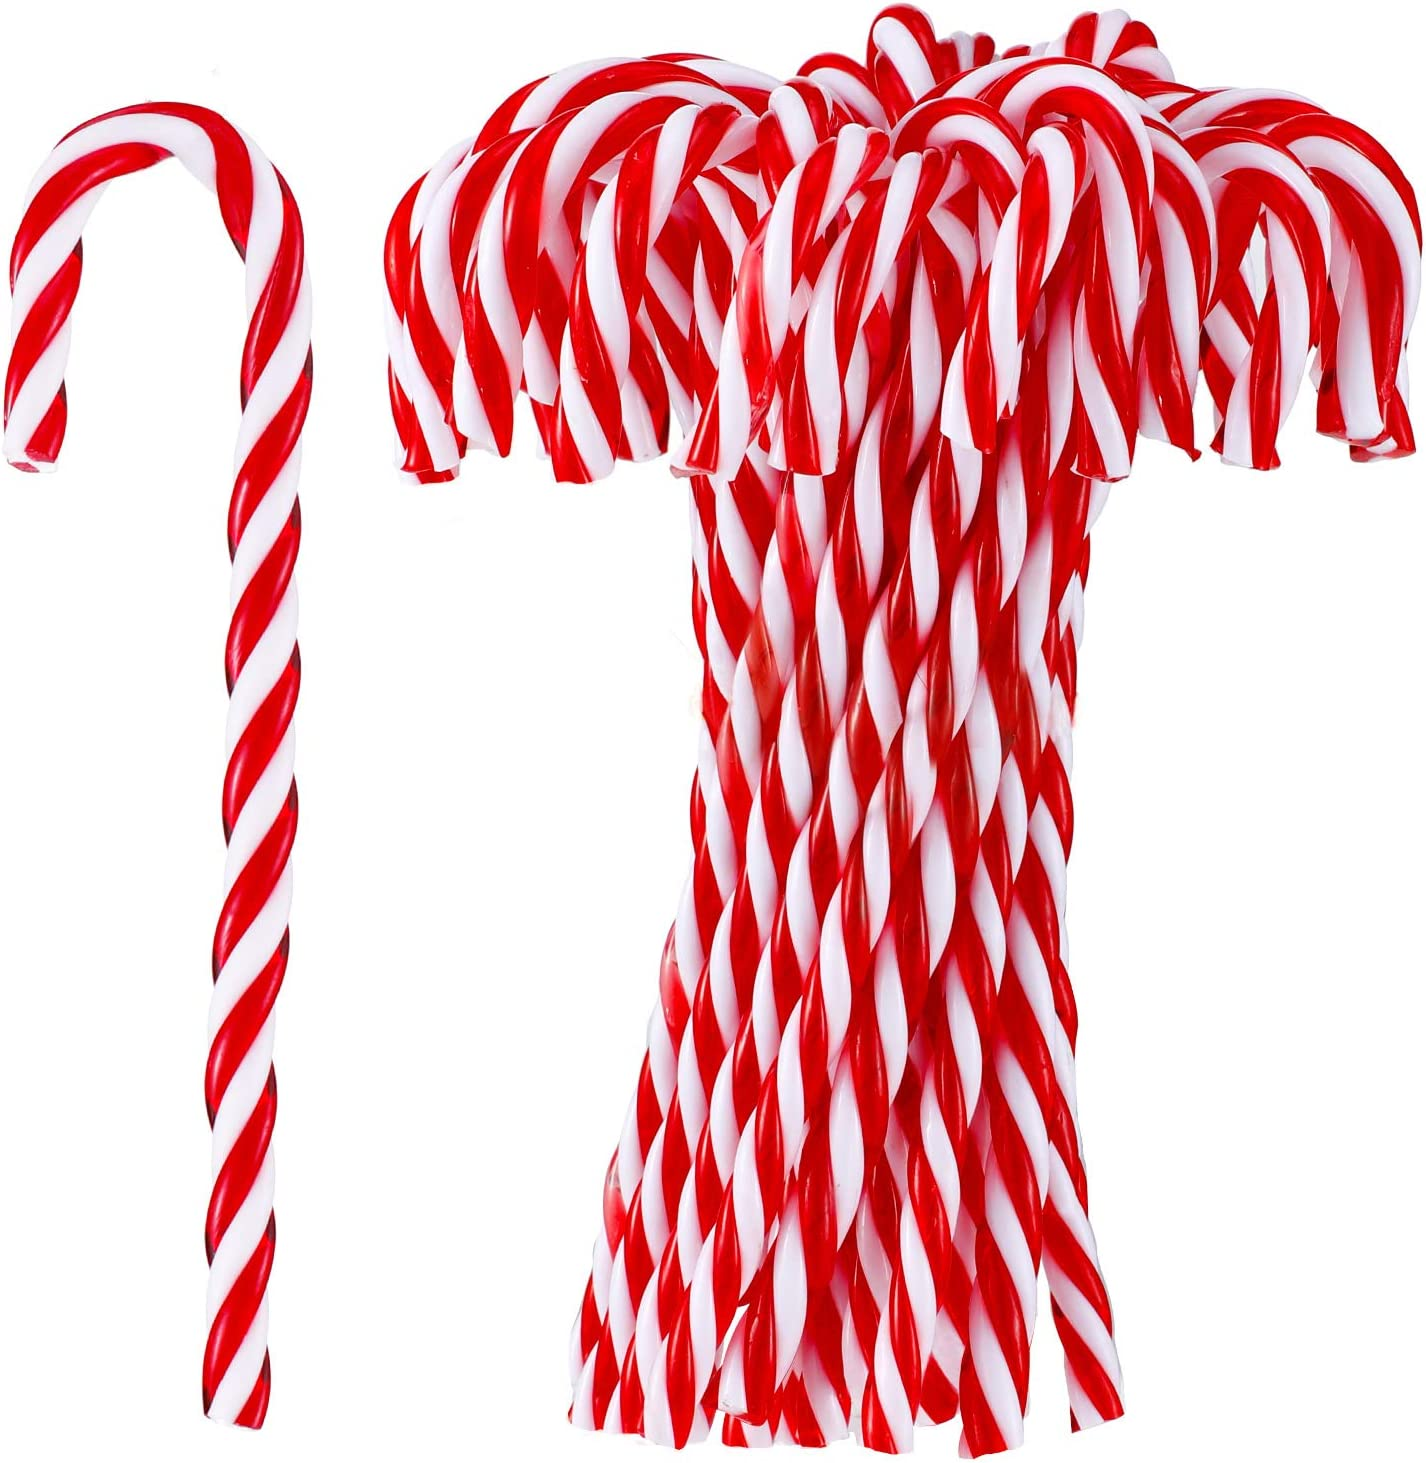 Sumind 80 Piece Christmas Crutch Plastic Candy Cane Hanging Ornaments Christmas Cane Accessories Hanging for Christmas Party